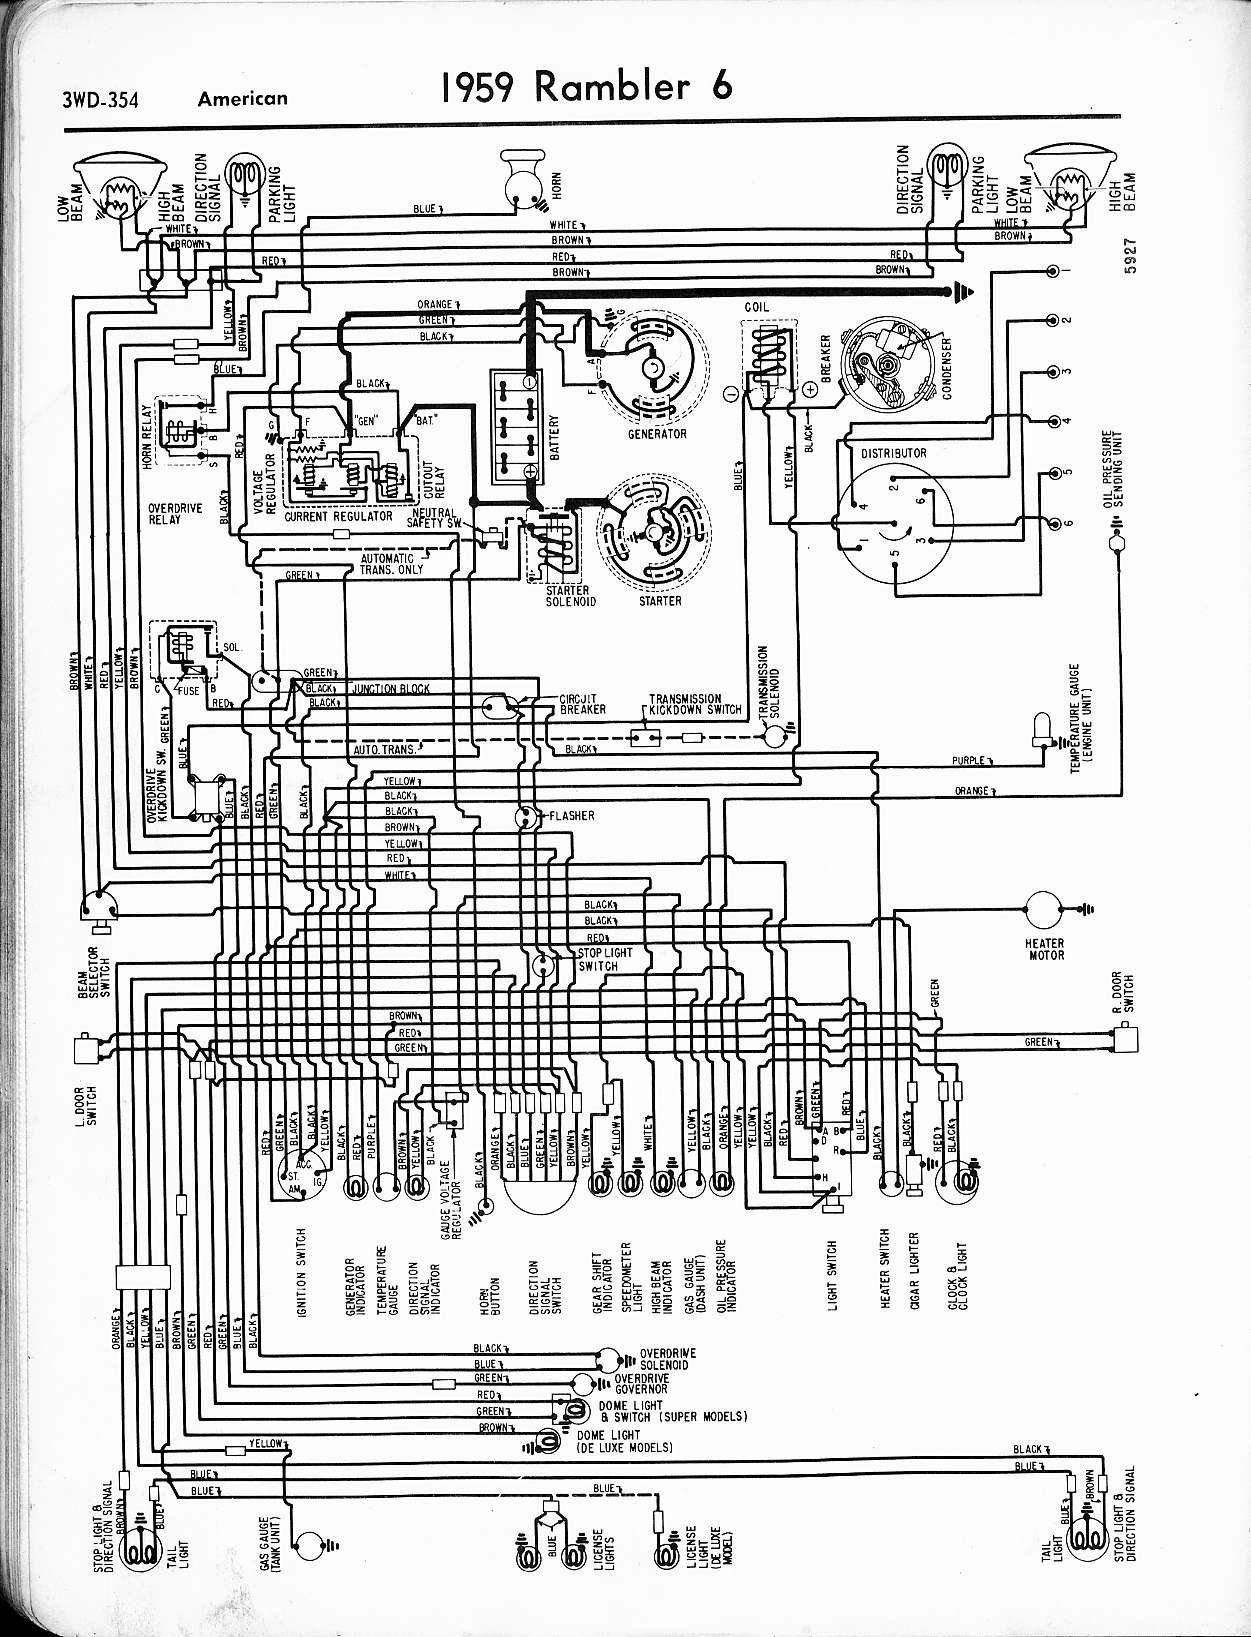 Old Circuit Diagram - My Wiring Diagram on capacitor symbols, electronics diagram symbols, industrial wiring symbols, hvac symbols, wiring drawing symbols, networking diagram symbols, wiring symbols guide, programming diagram symbols, security diagram symbols, pneumatic symbols, motor symbols, connection diagram symbols, pump diagram symbols, schematic symbols, vacuum diagram symbols, fuse symbols, ladder diagram symbols, plumbing diagram symbols, wiring symbol chart, electrical symbols,